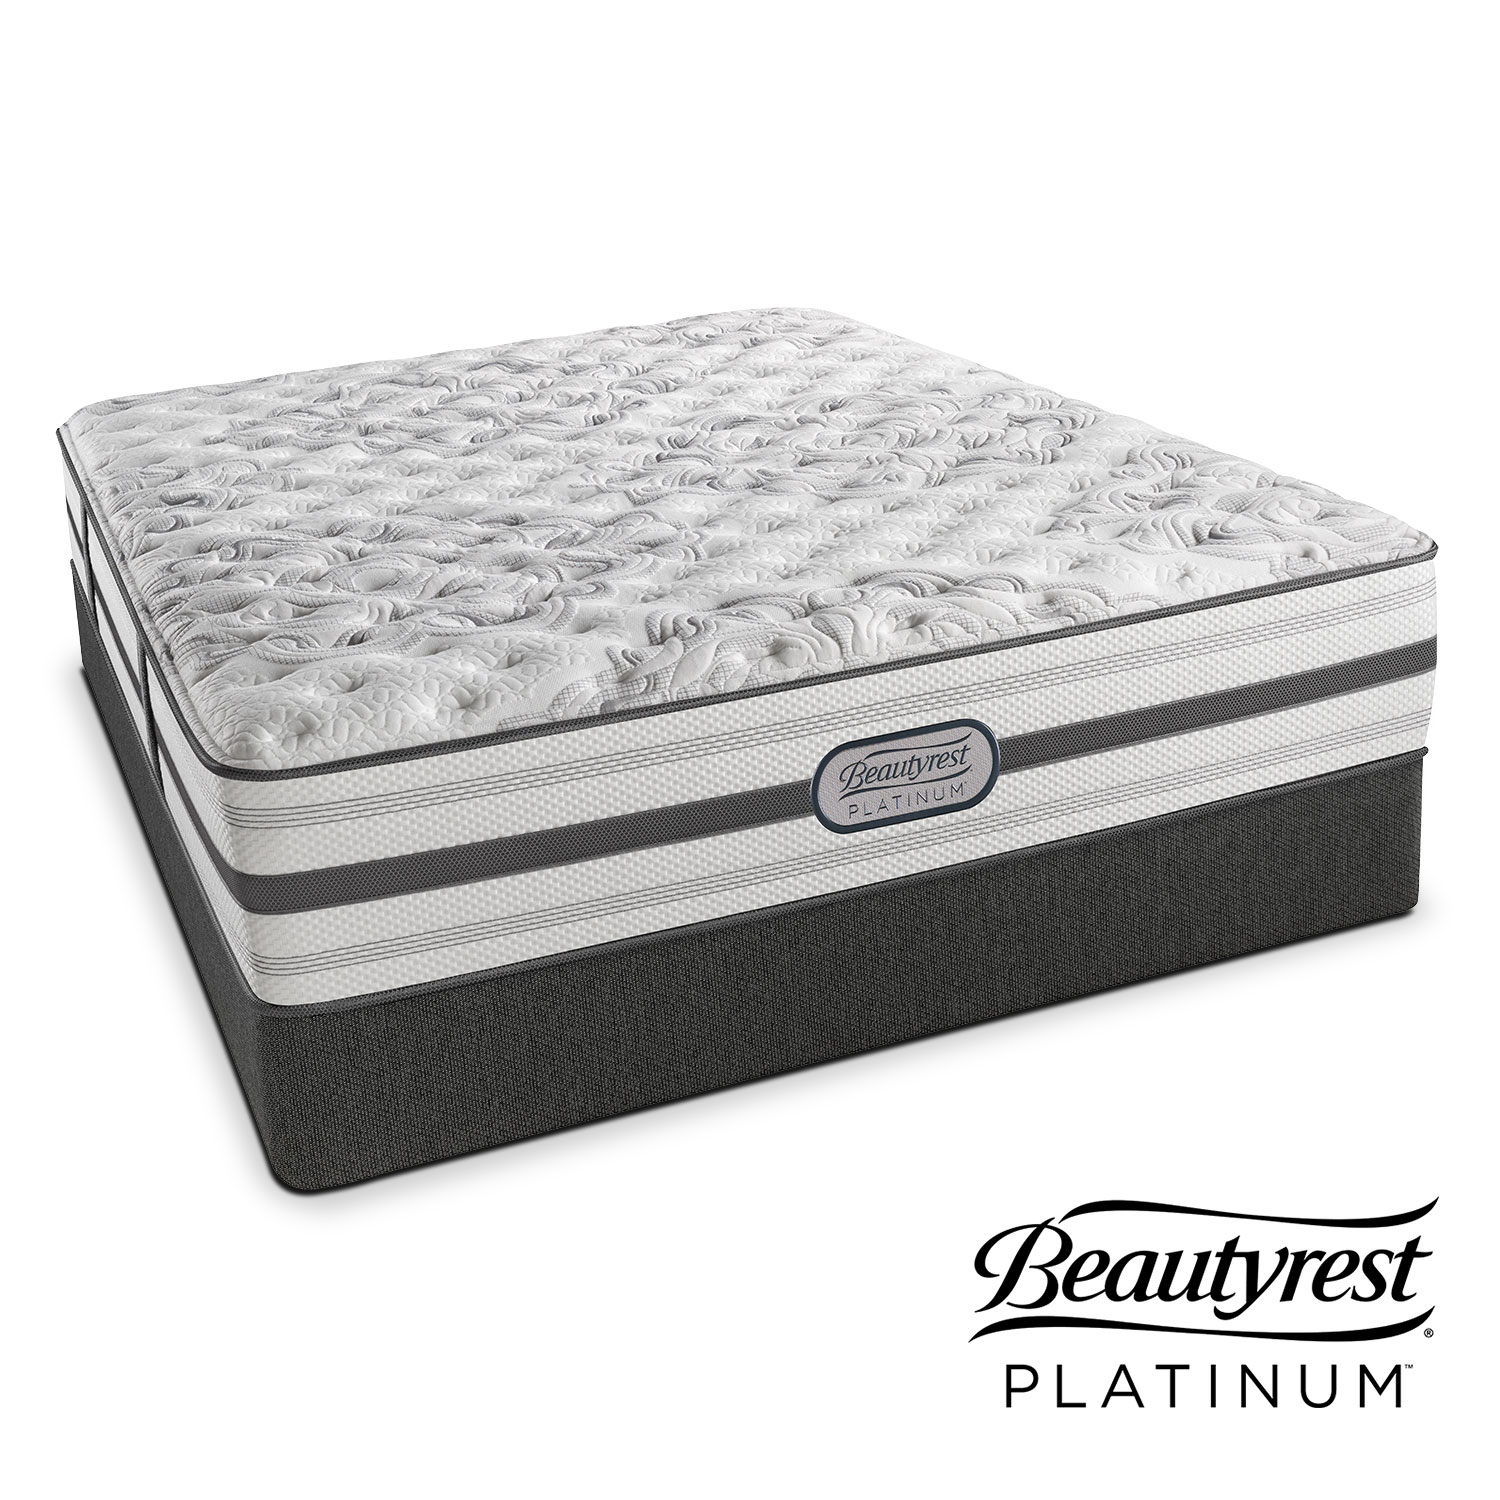 Mattresses and Bedding - Helena Extra-Firm Queen Mattress and Low-Profile Foundation Set